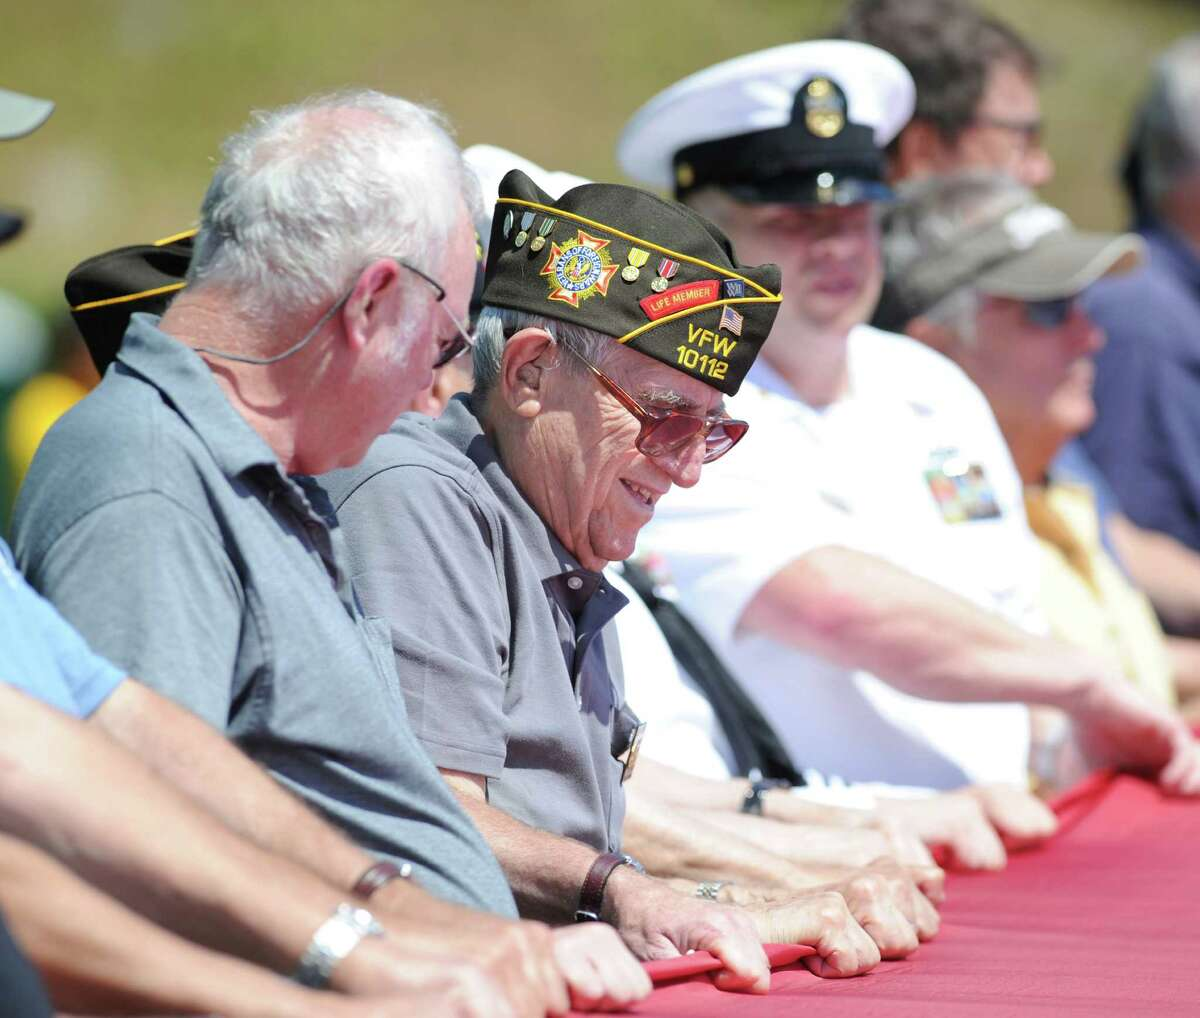 Cos Cob resident Joe Gregory, a U.S. Navy veteran of World War II, during the Salute to Veterans ceremony at Havemeyer Field in Greenwich, Saturday afternoon, June 23, 2012.